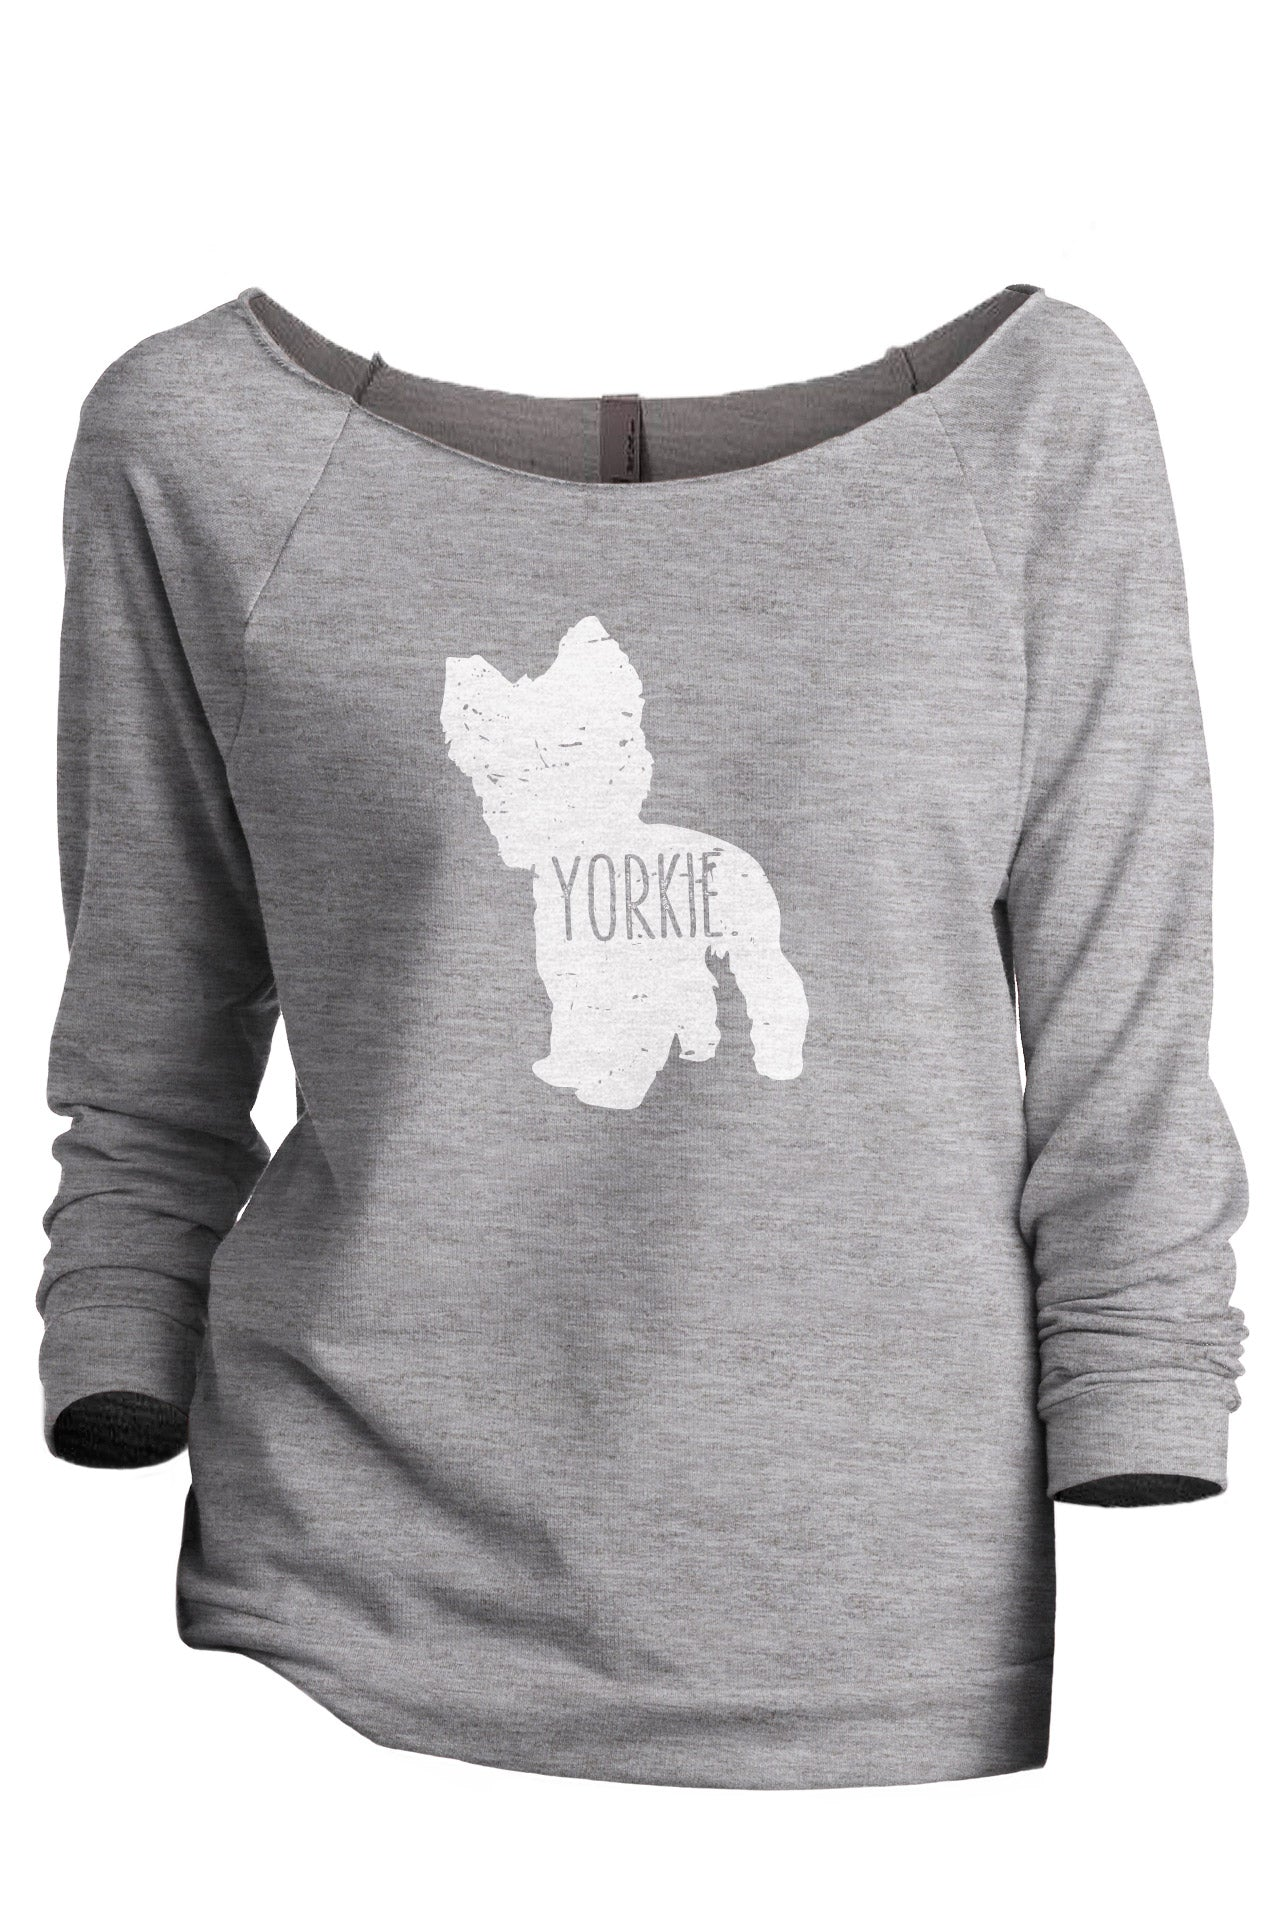 Yorkie Dog Silhouette Women's Graphic Printed Lightweight Slouchy 3/4 Sleeves Sweatshirt Sport Grey